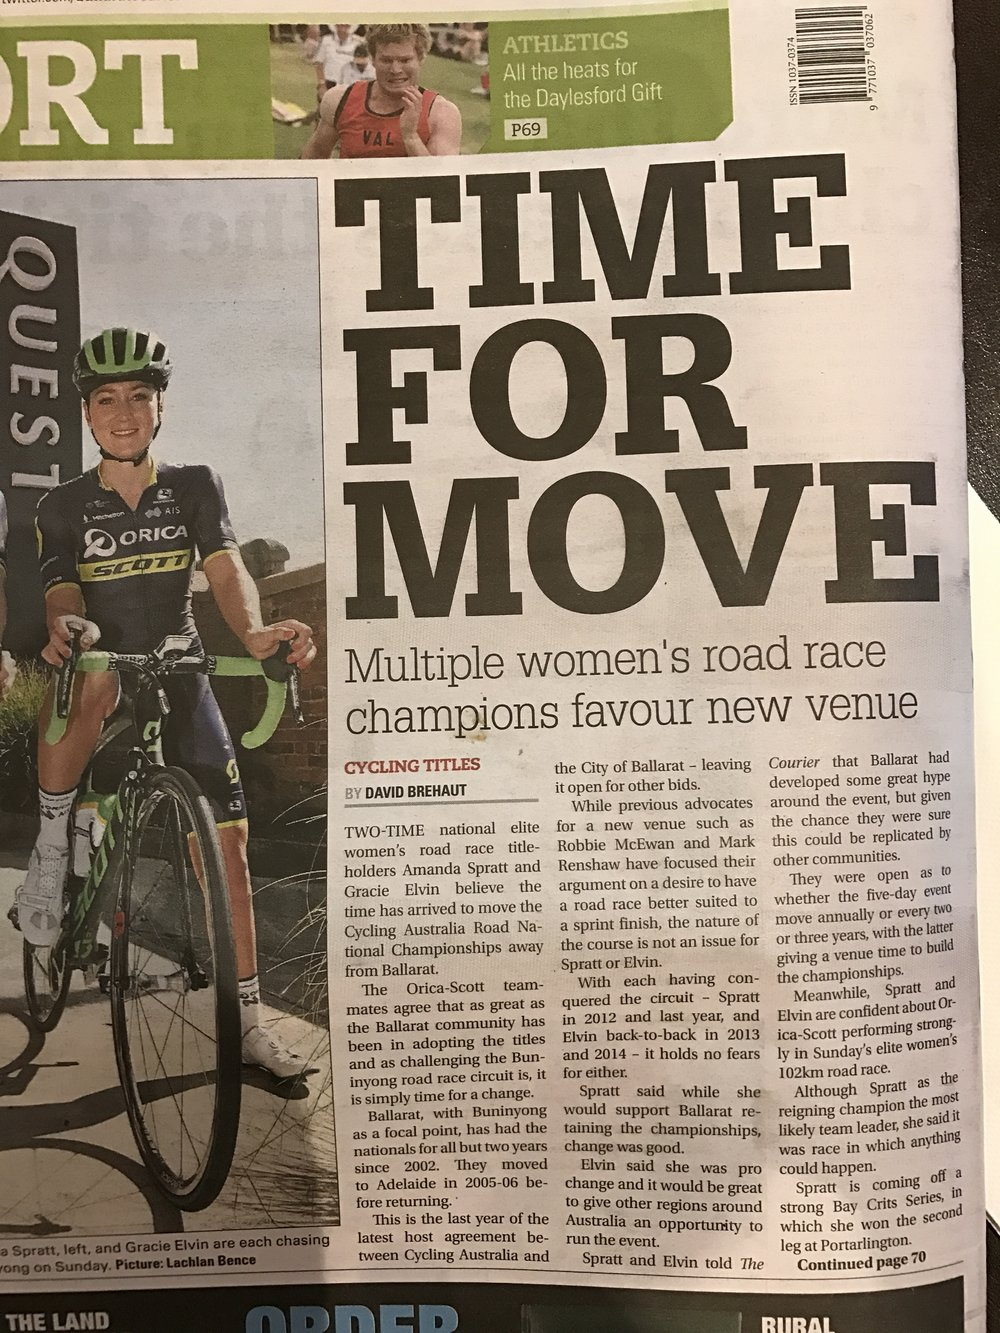 Ballarat 17 - The local newspaper lead story on the Saturday of the Under 23 Road Championships. The local journalists for some reason were fixated with headlining why we'd like to leave Ballarat instead of celebrating the current event itself.